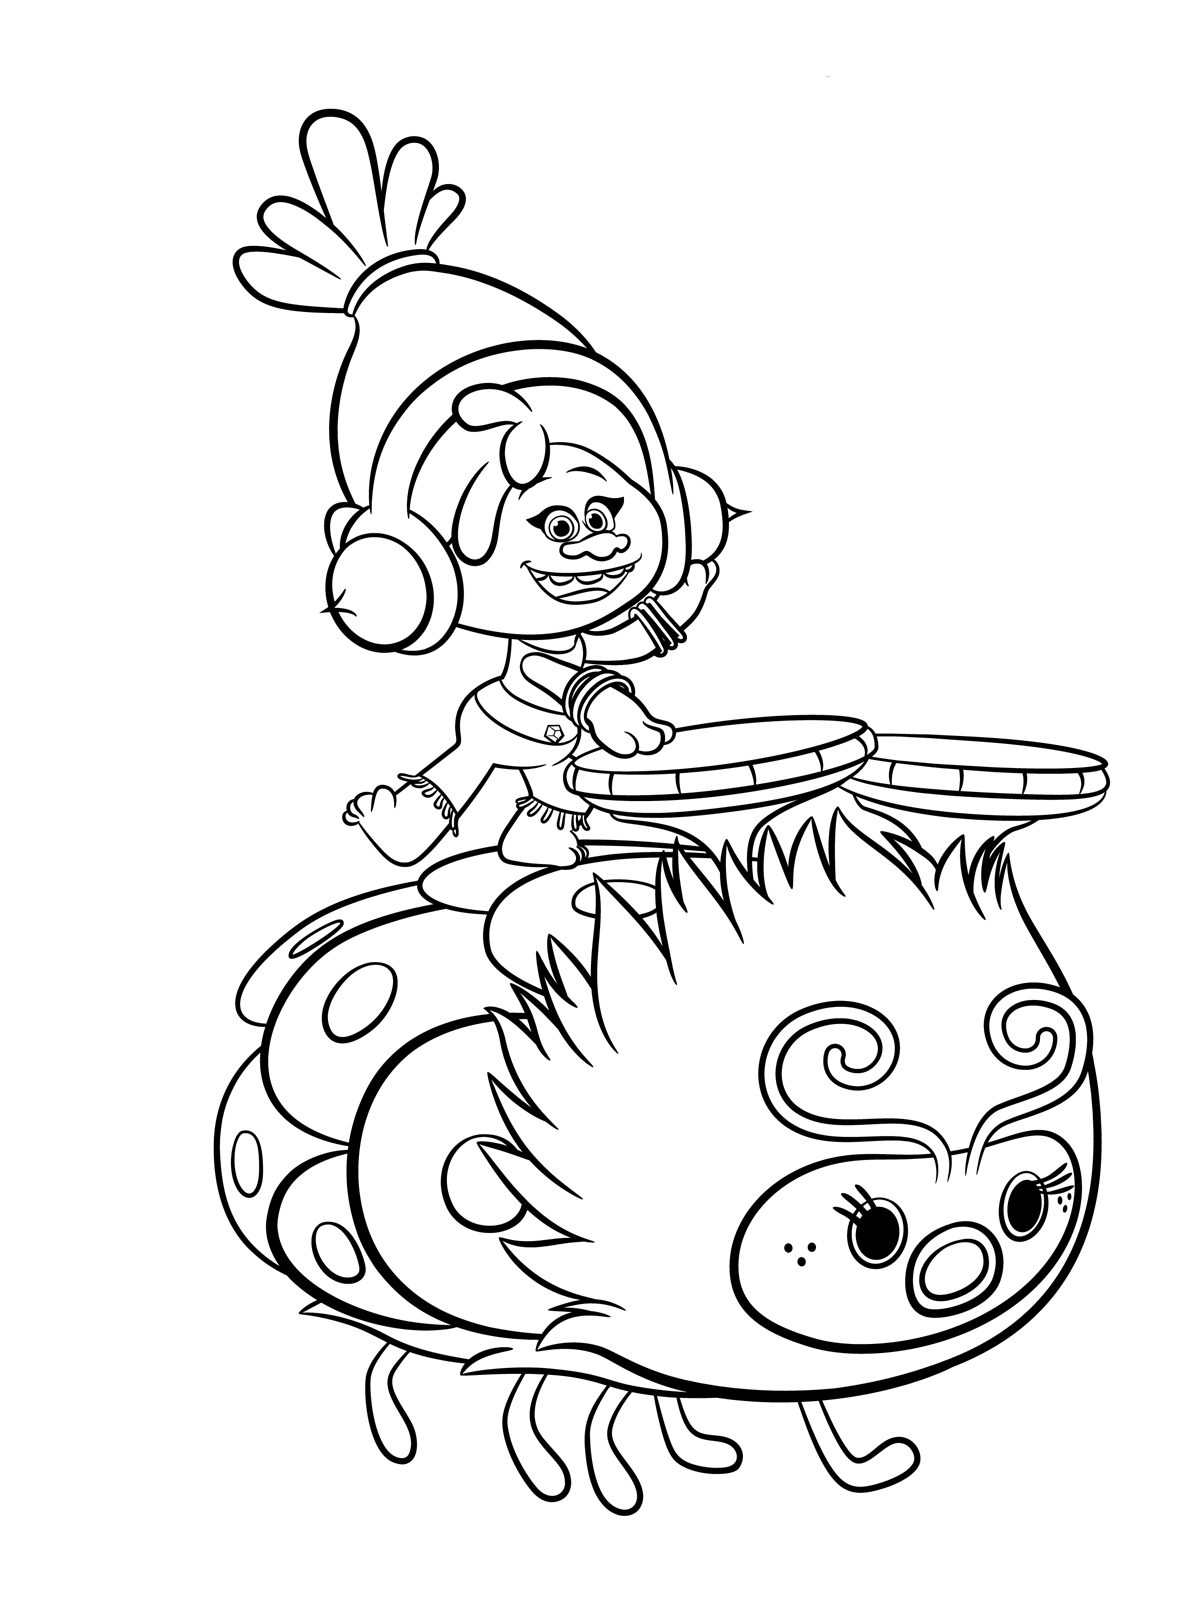 coloring sheet trolls trolls coloring pages to download and print for free coloring trolls sheet